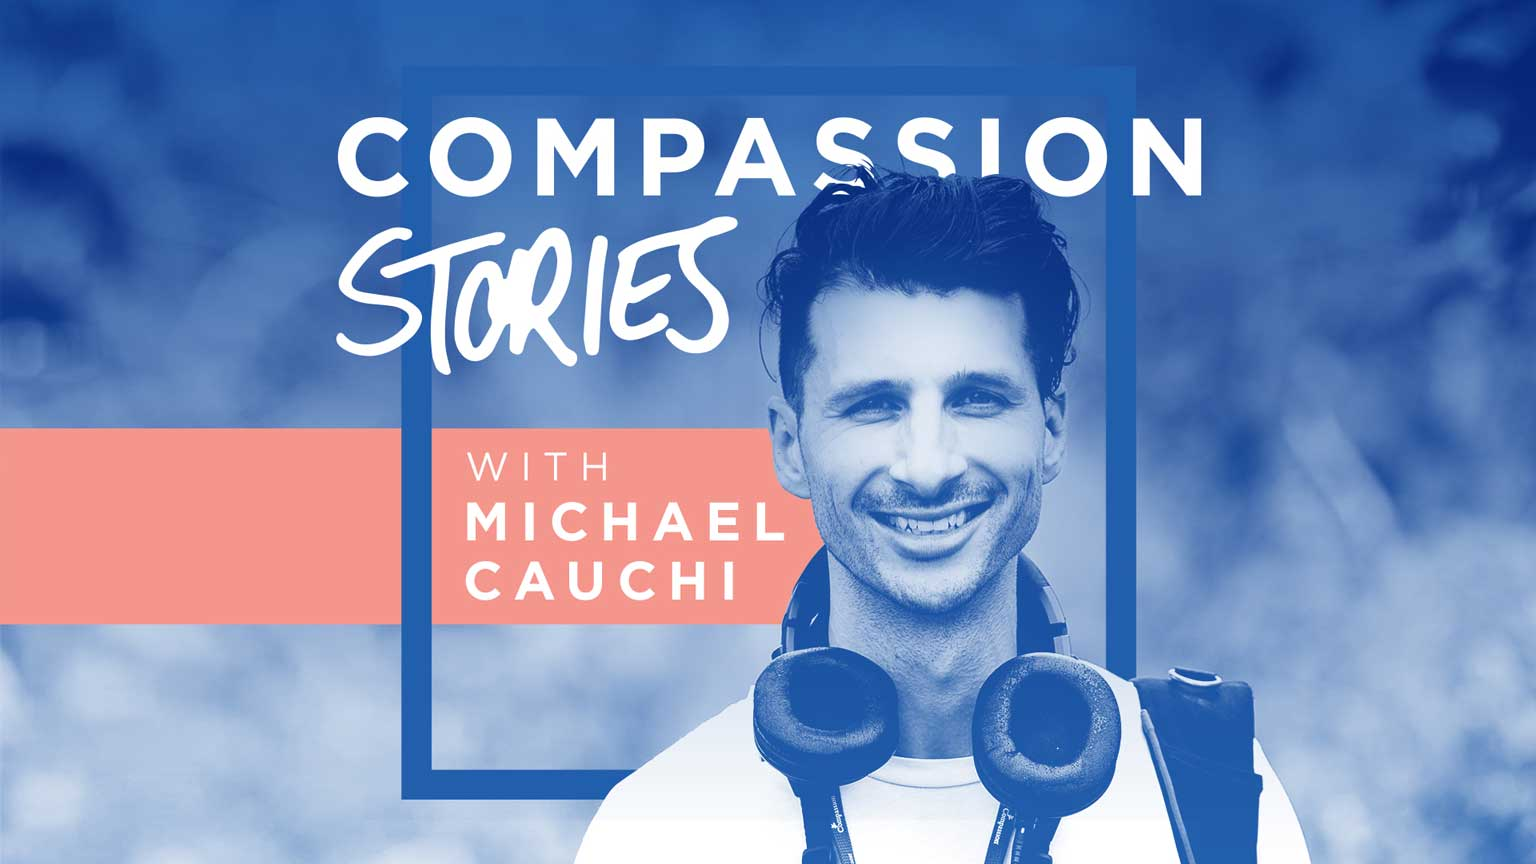 web 5493 Compassion-Stories-Podcast Banner 01 1920x1080px